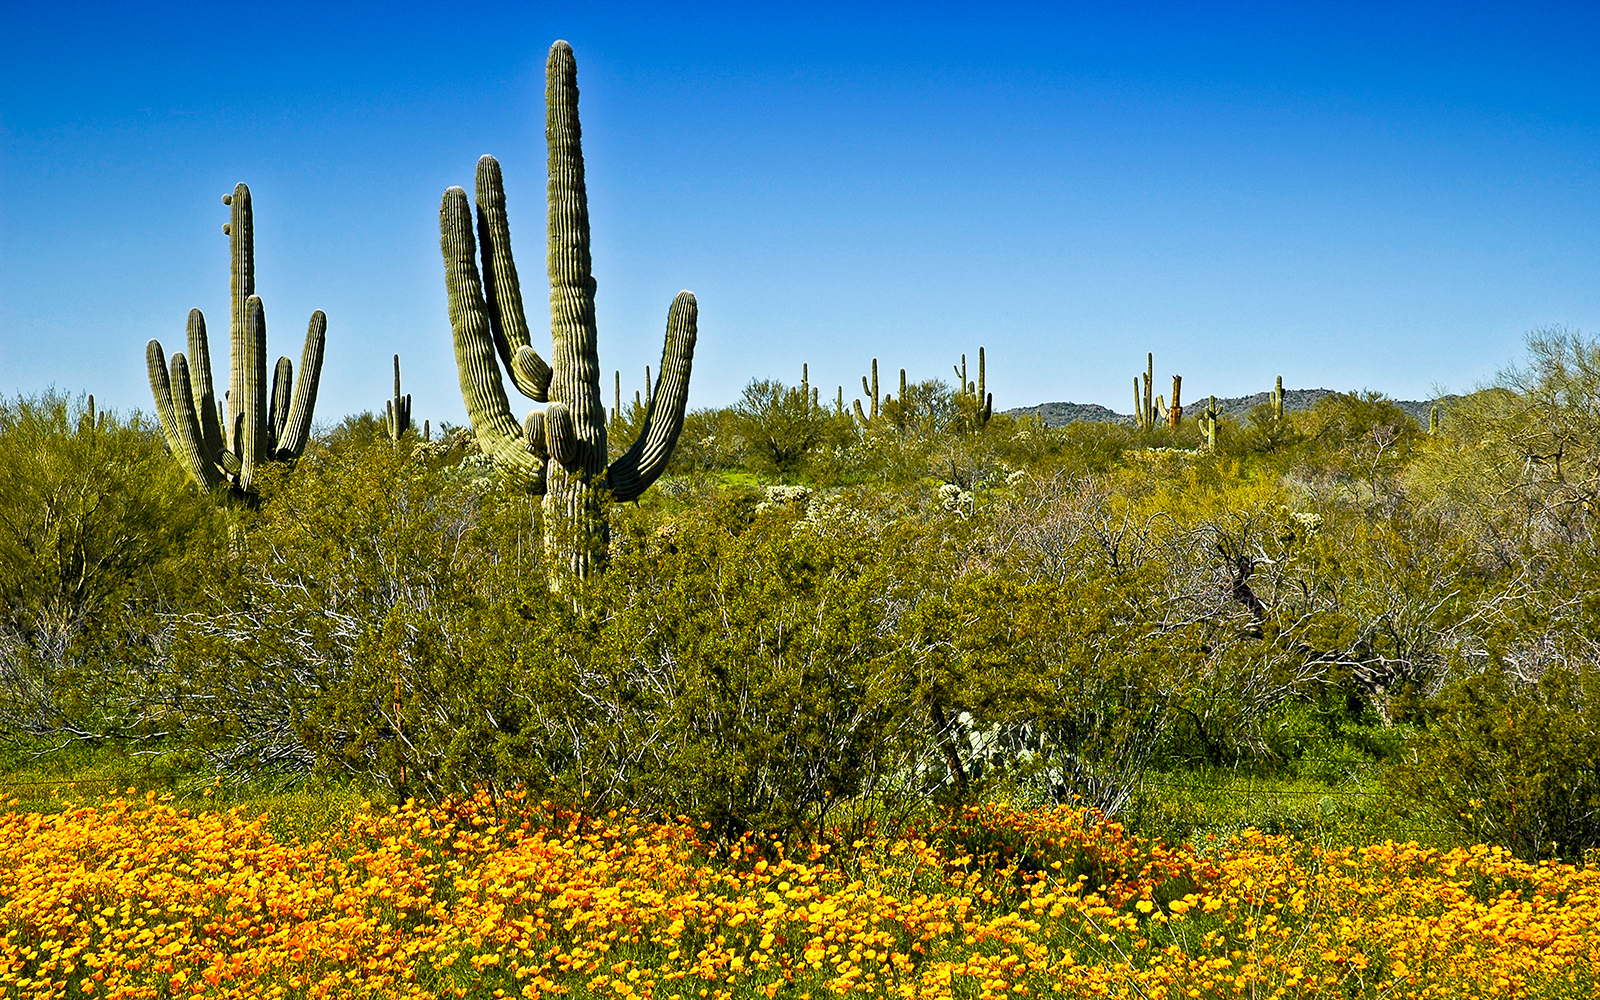 Arizona-Sonora Desert, Arizona